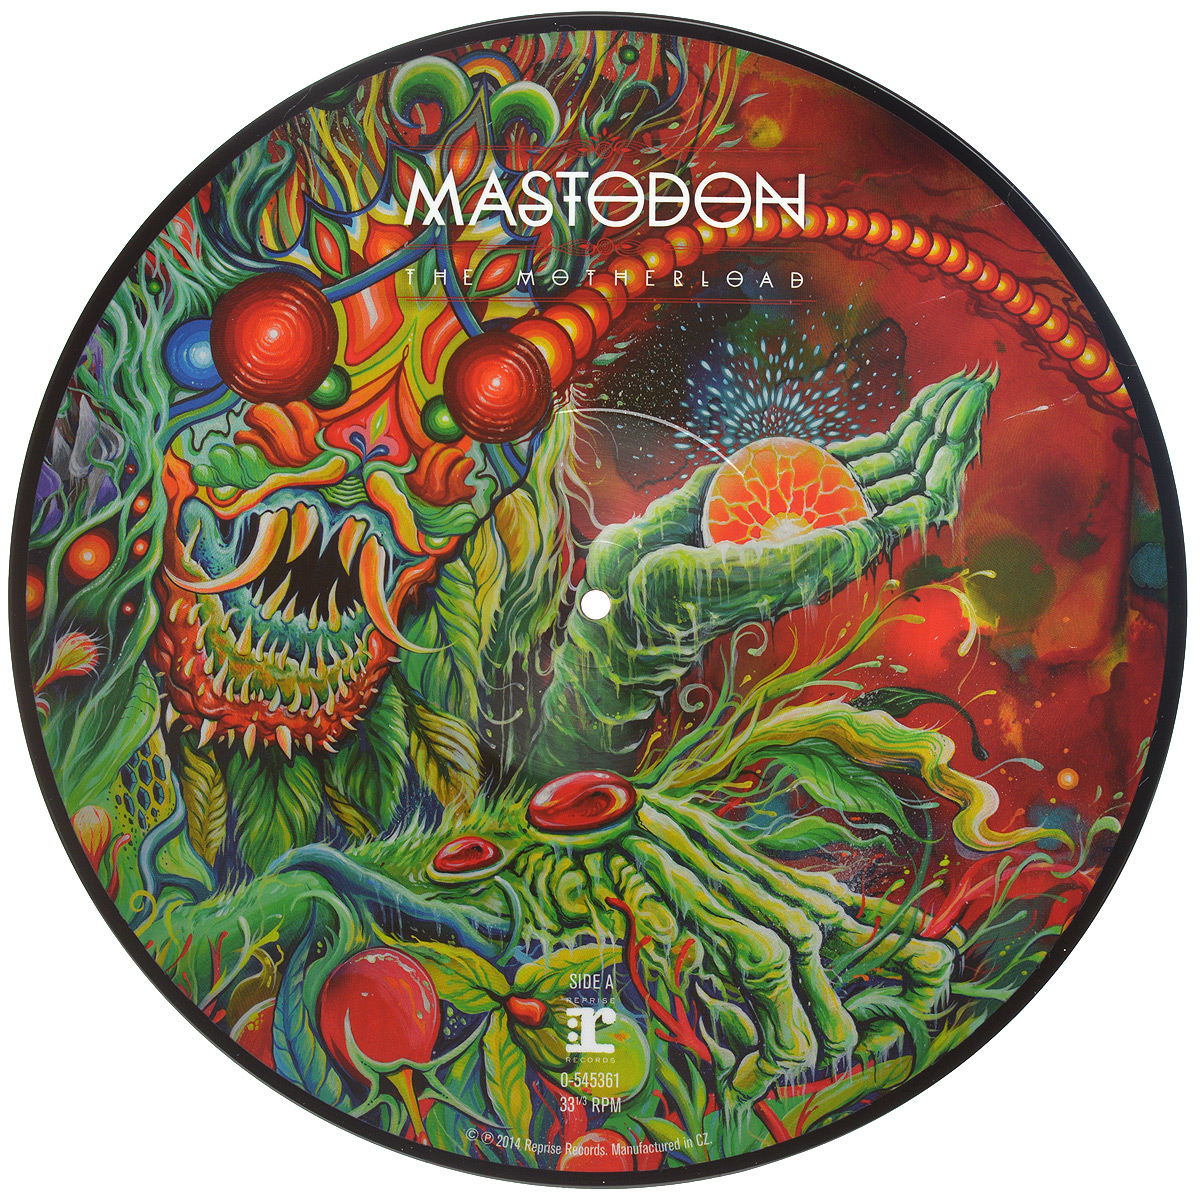 Mastodon Mastodon. The Motherload (LP) mastodon mastodon the motherload lp